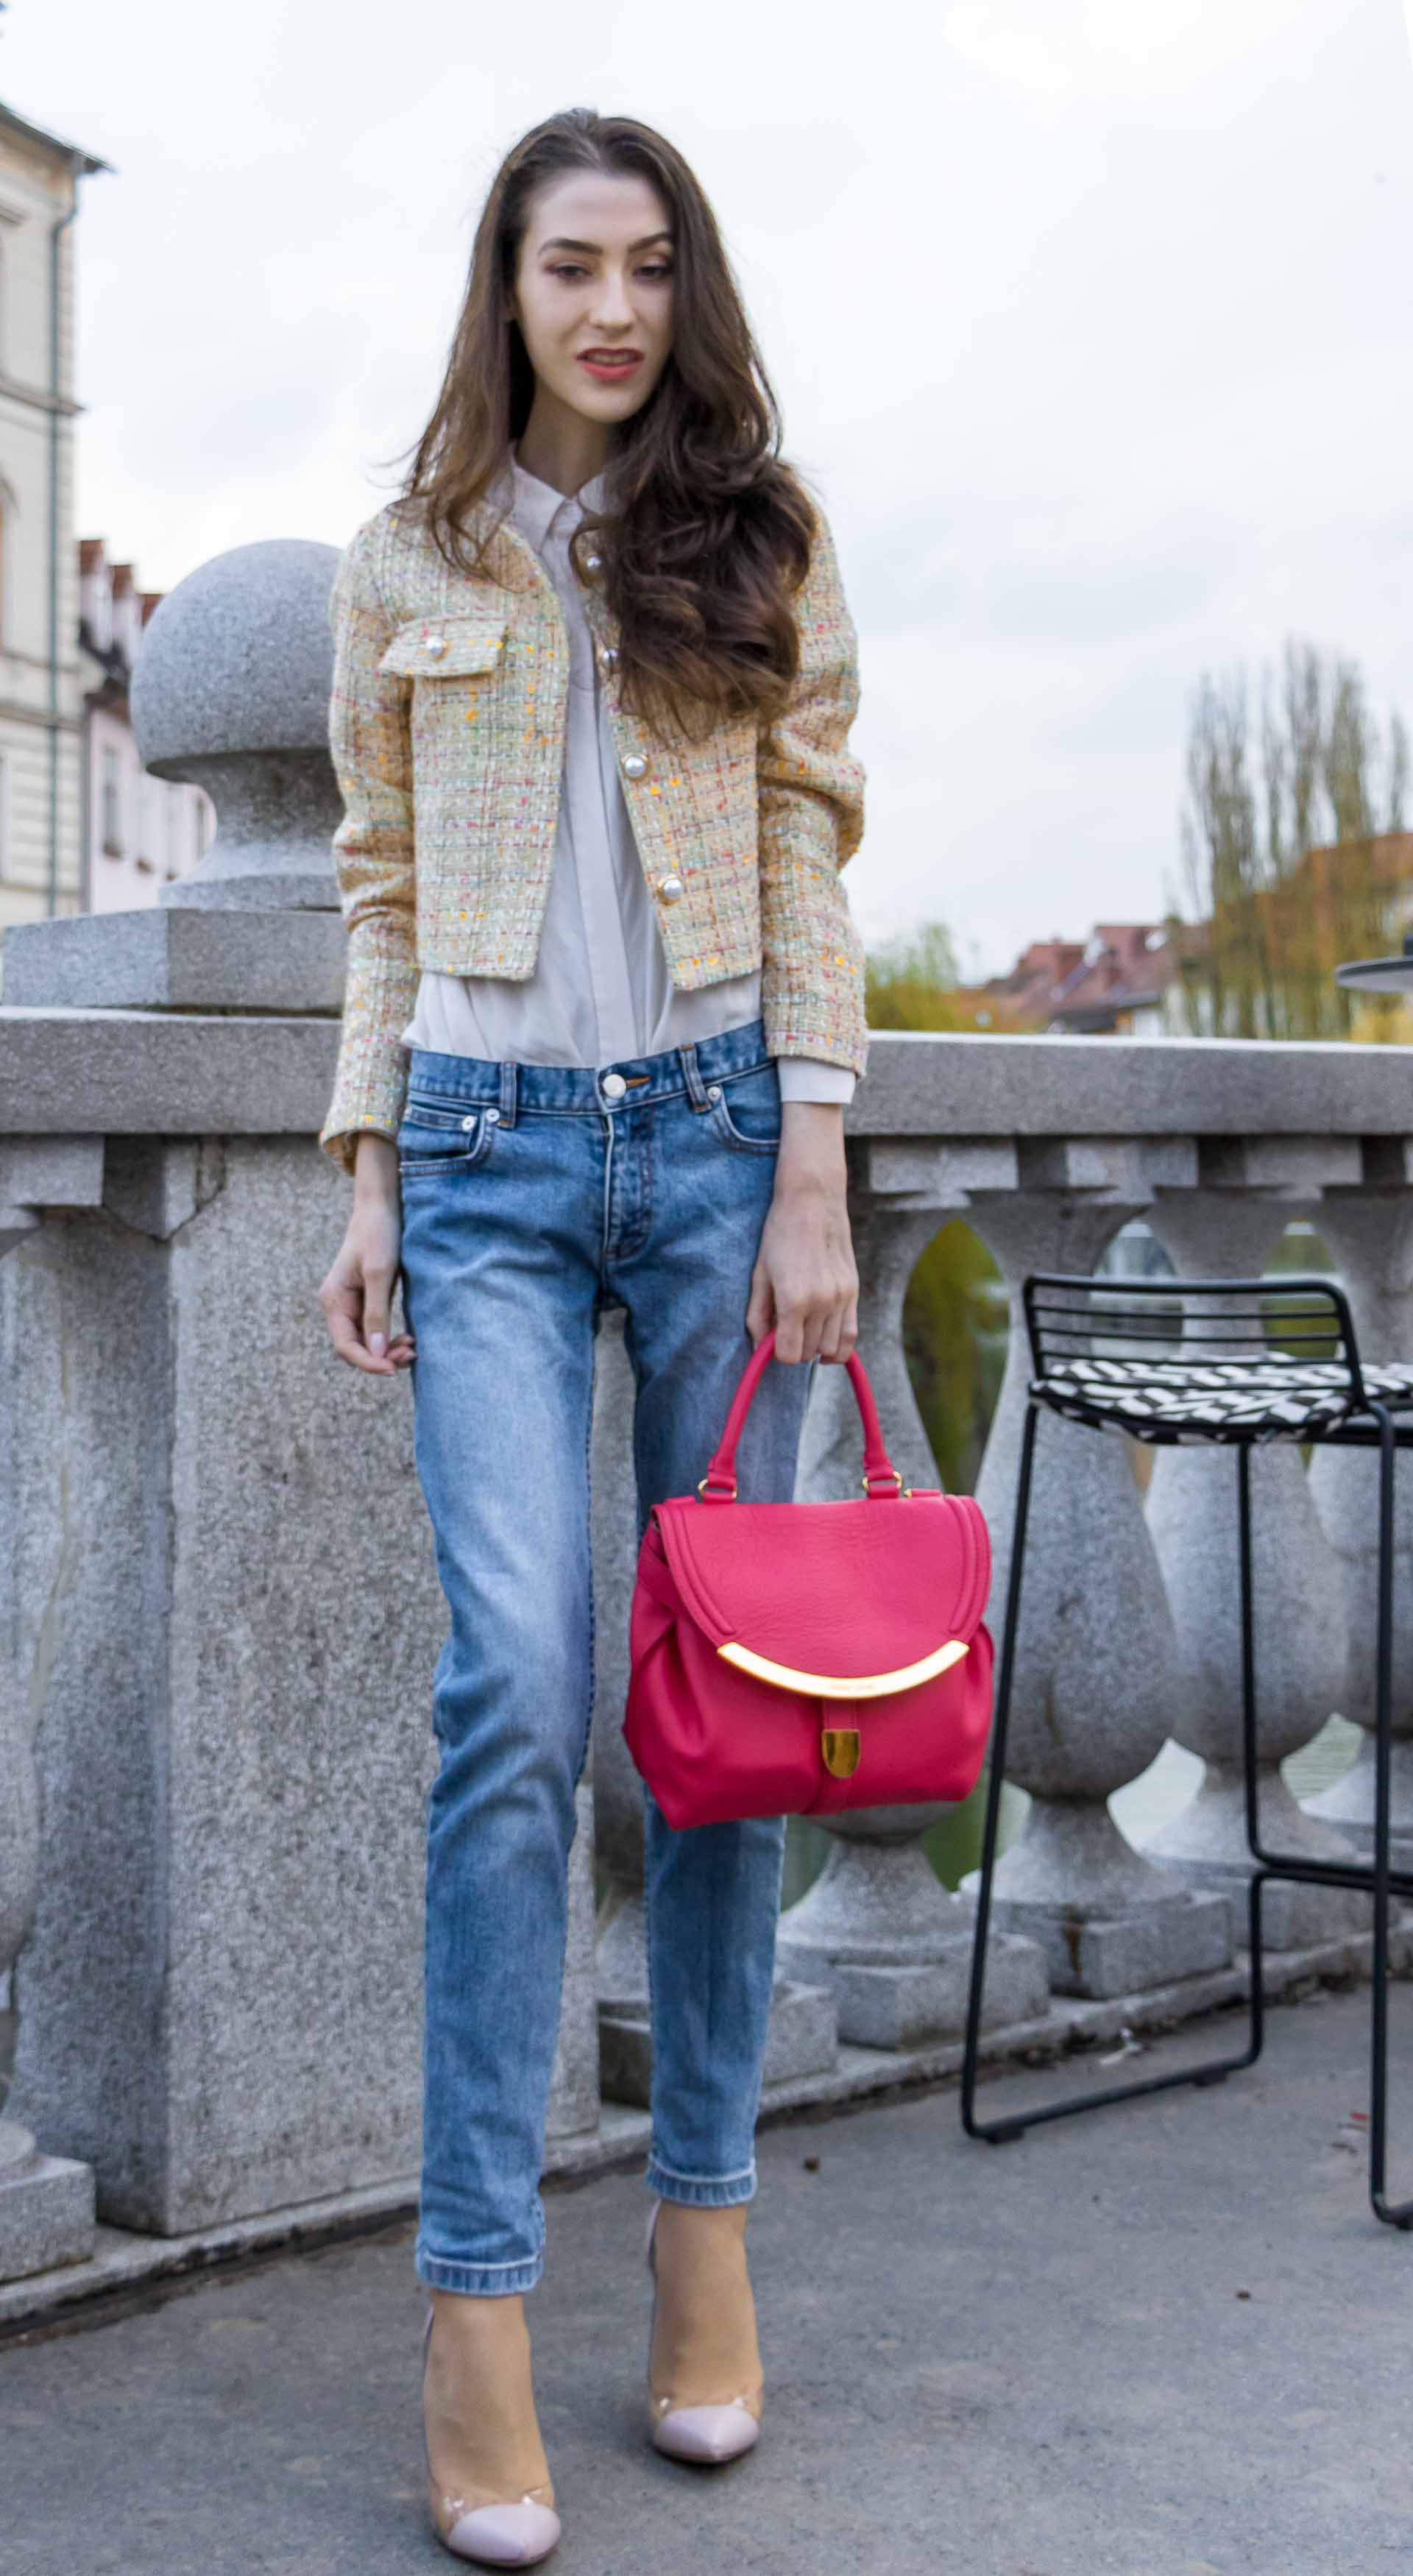 Veronika Lipar Fashion Blogger of Brunette from Wall Street dressed in chic casual everyday spring outfit, the yellow tweed jacket from Storets, blue jeans from A.P.C., blush Gianvito Rossi plexi pumps, pink top handle bag and organza white shirt for Sunday brunch